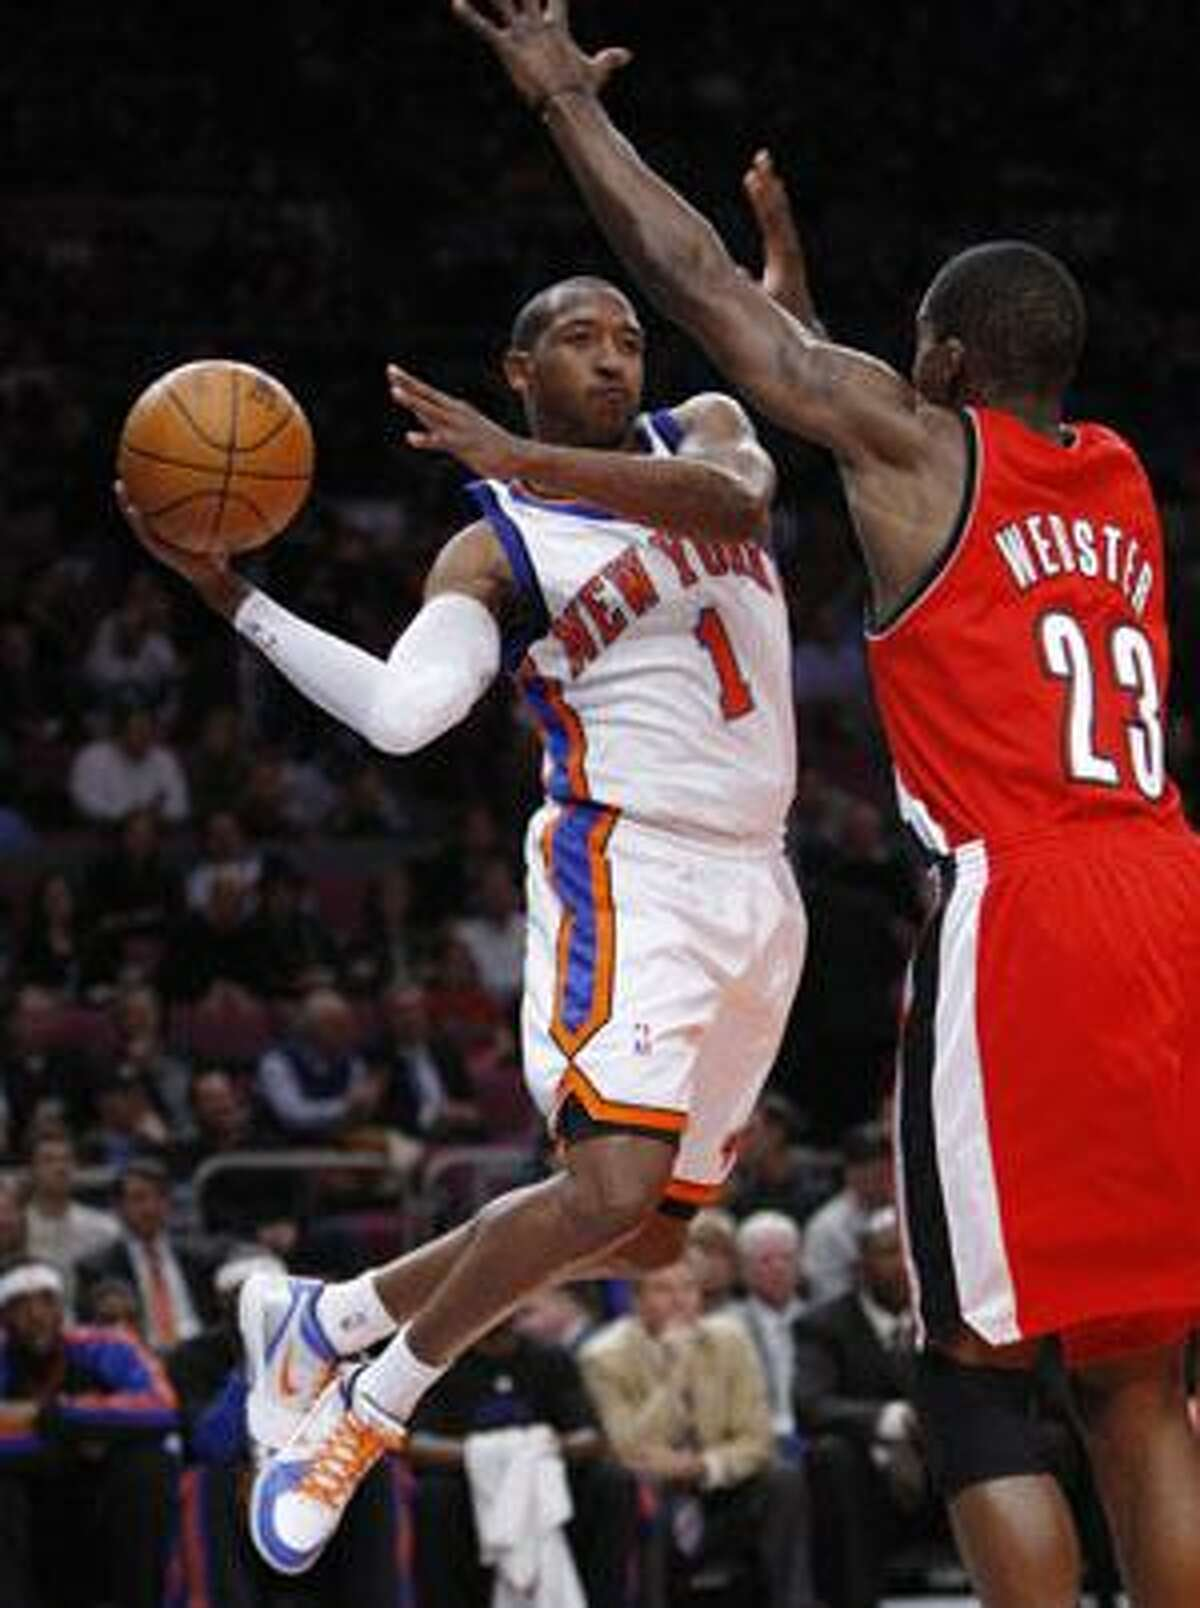 New York Knicks guard Chris Duhon (1) passes around Portland Trail Blazers forward Martell Webster (23) during the first quarter Monday night at Madison Square Garden in New York.